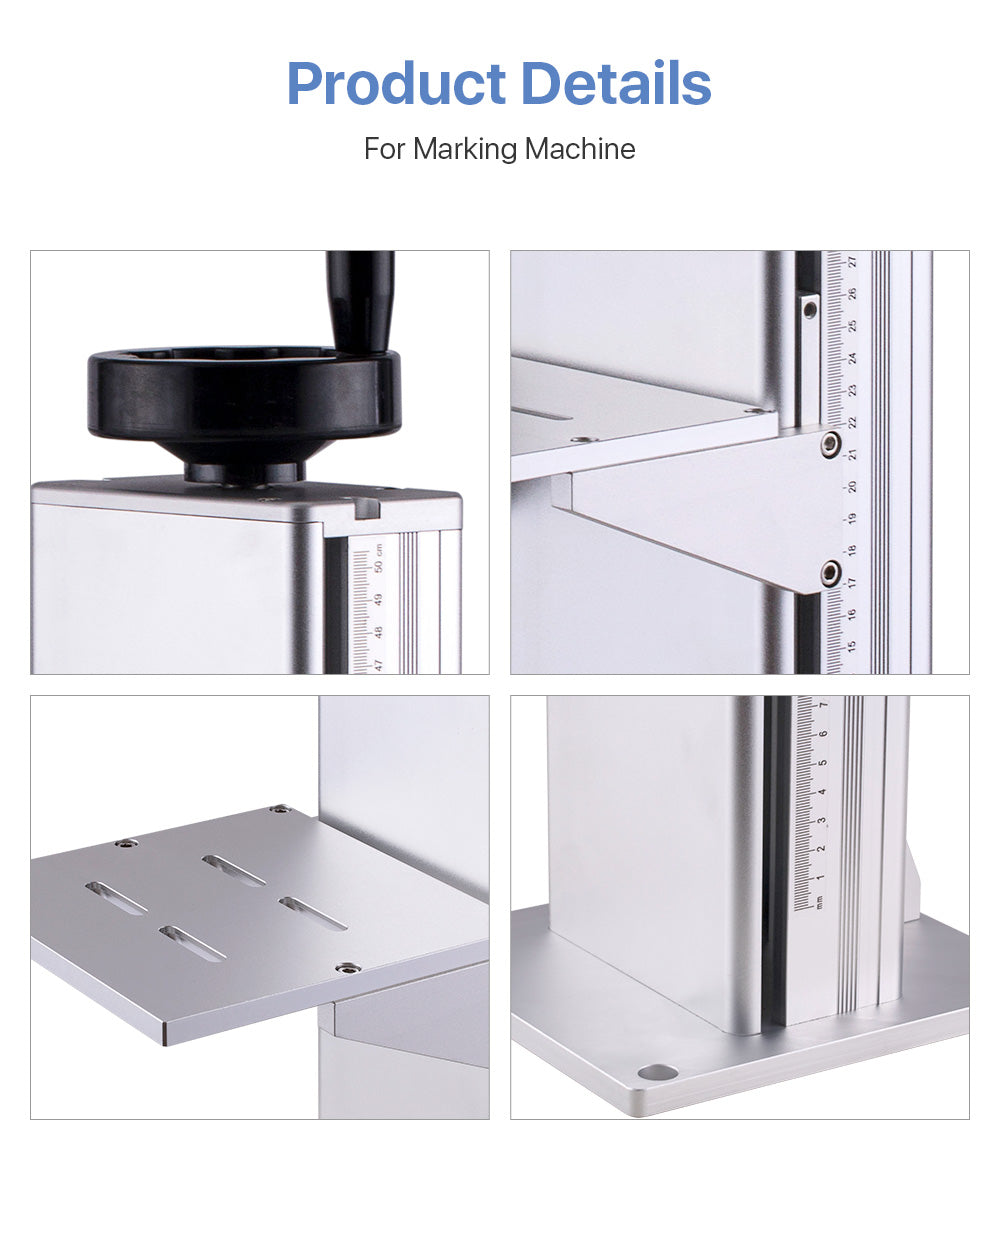 CO2 Laser Lift Table for Marking Machine